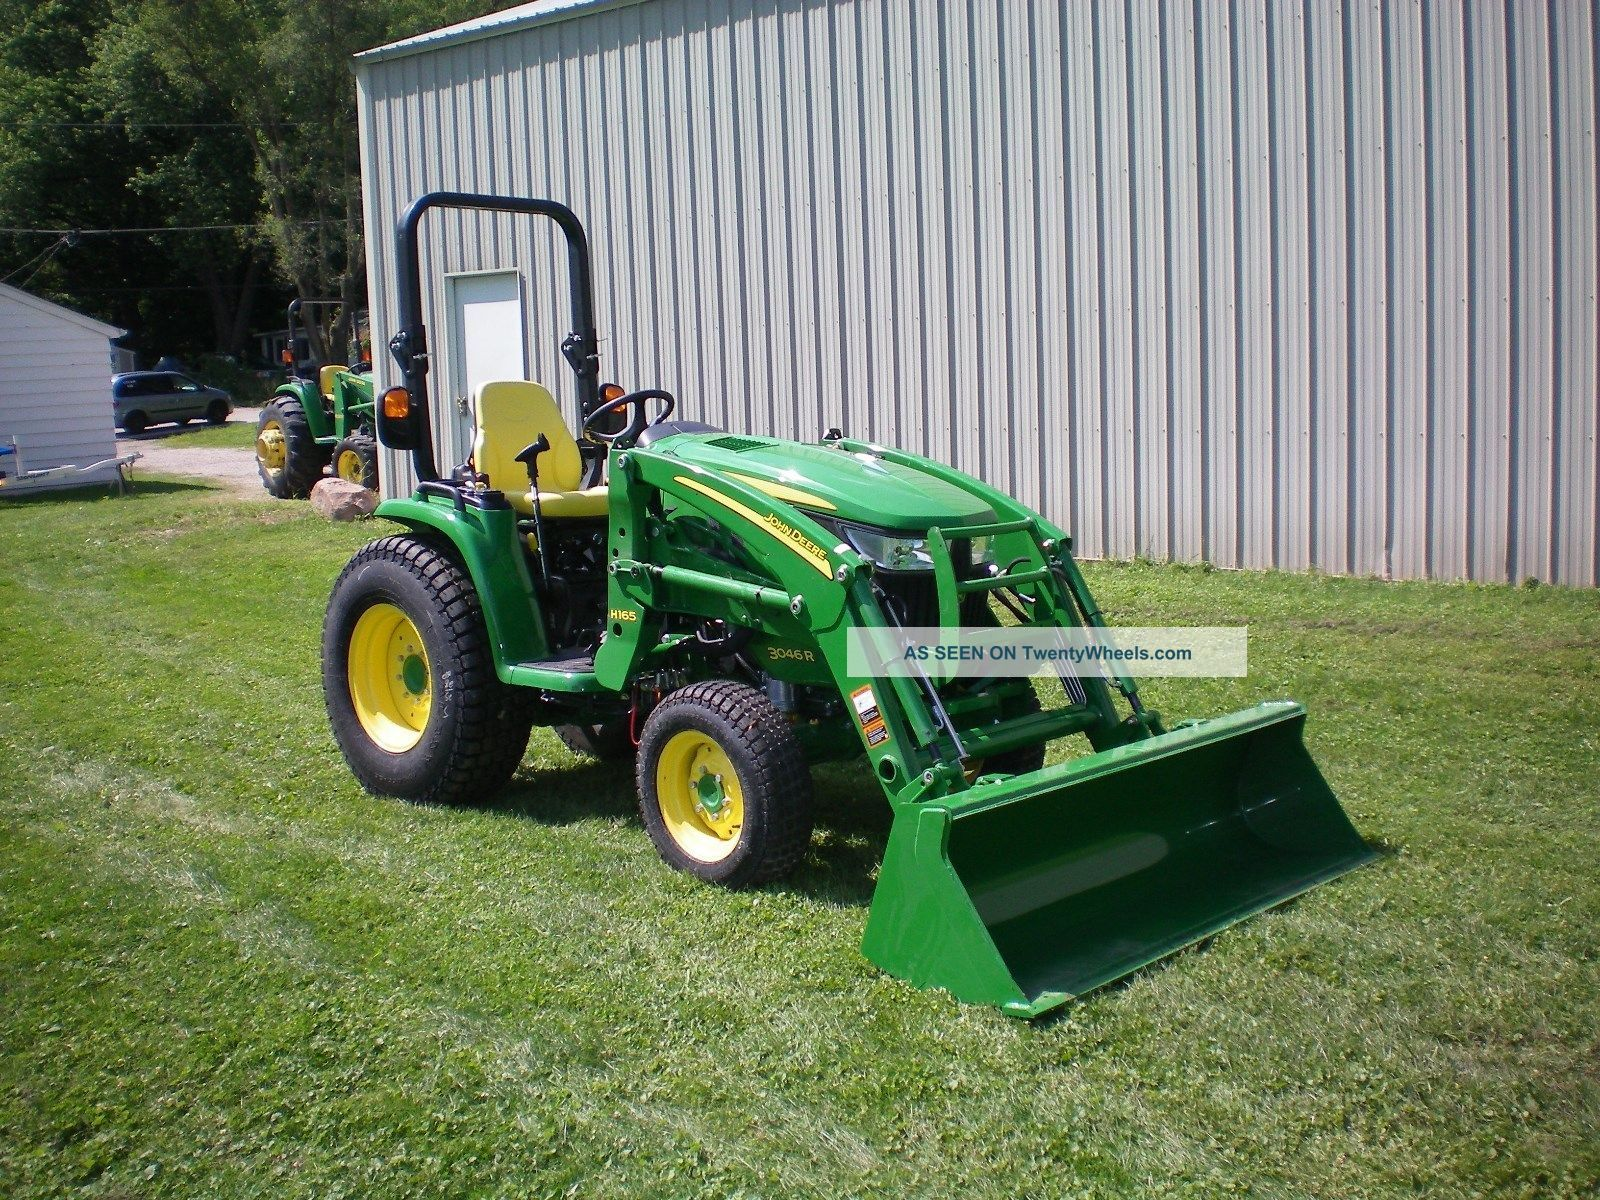 John Deere 3046r Compact Tractor With H165 Loader Tractors photo